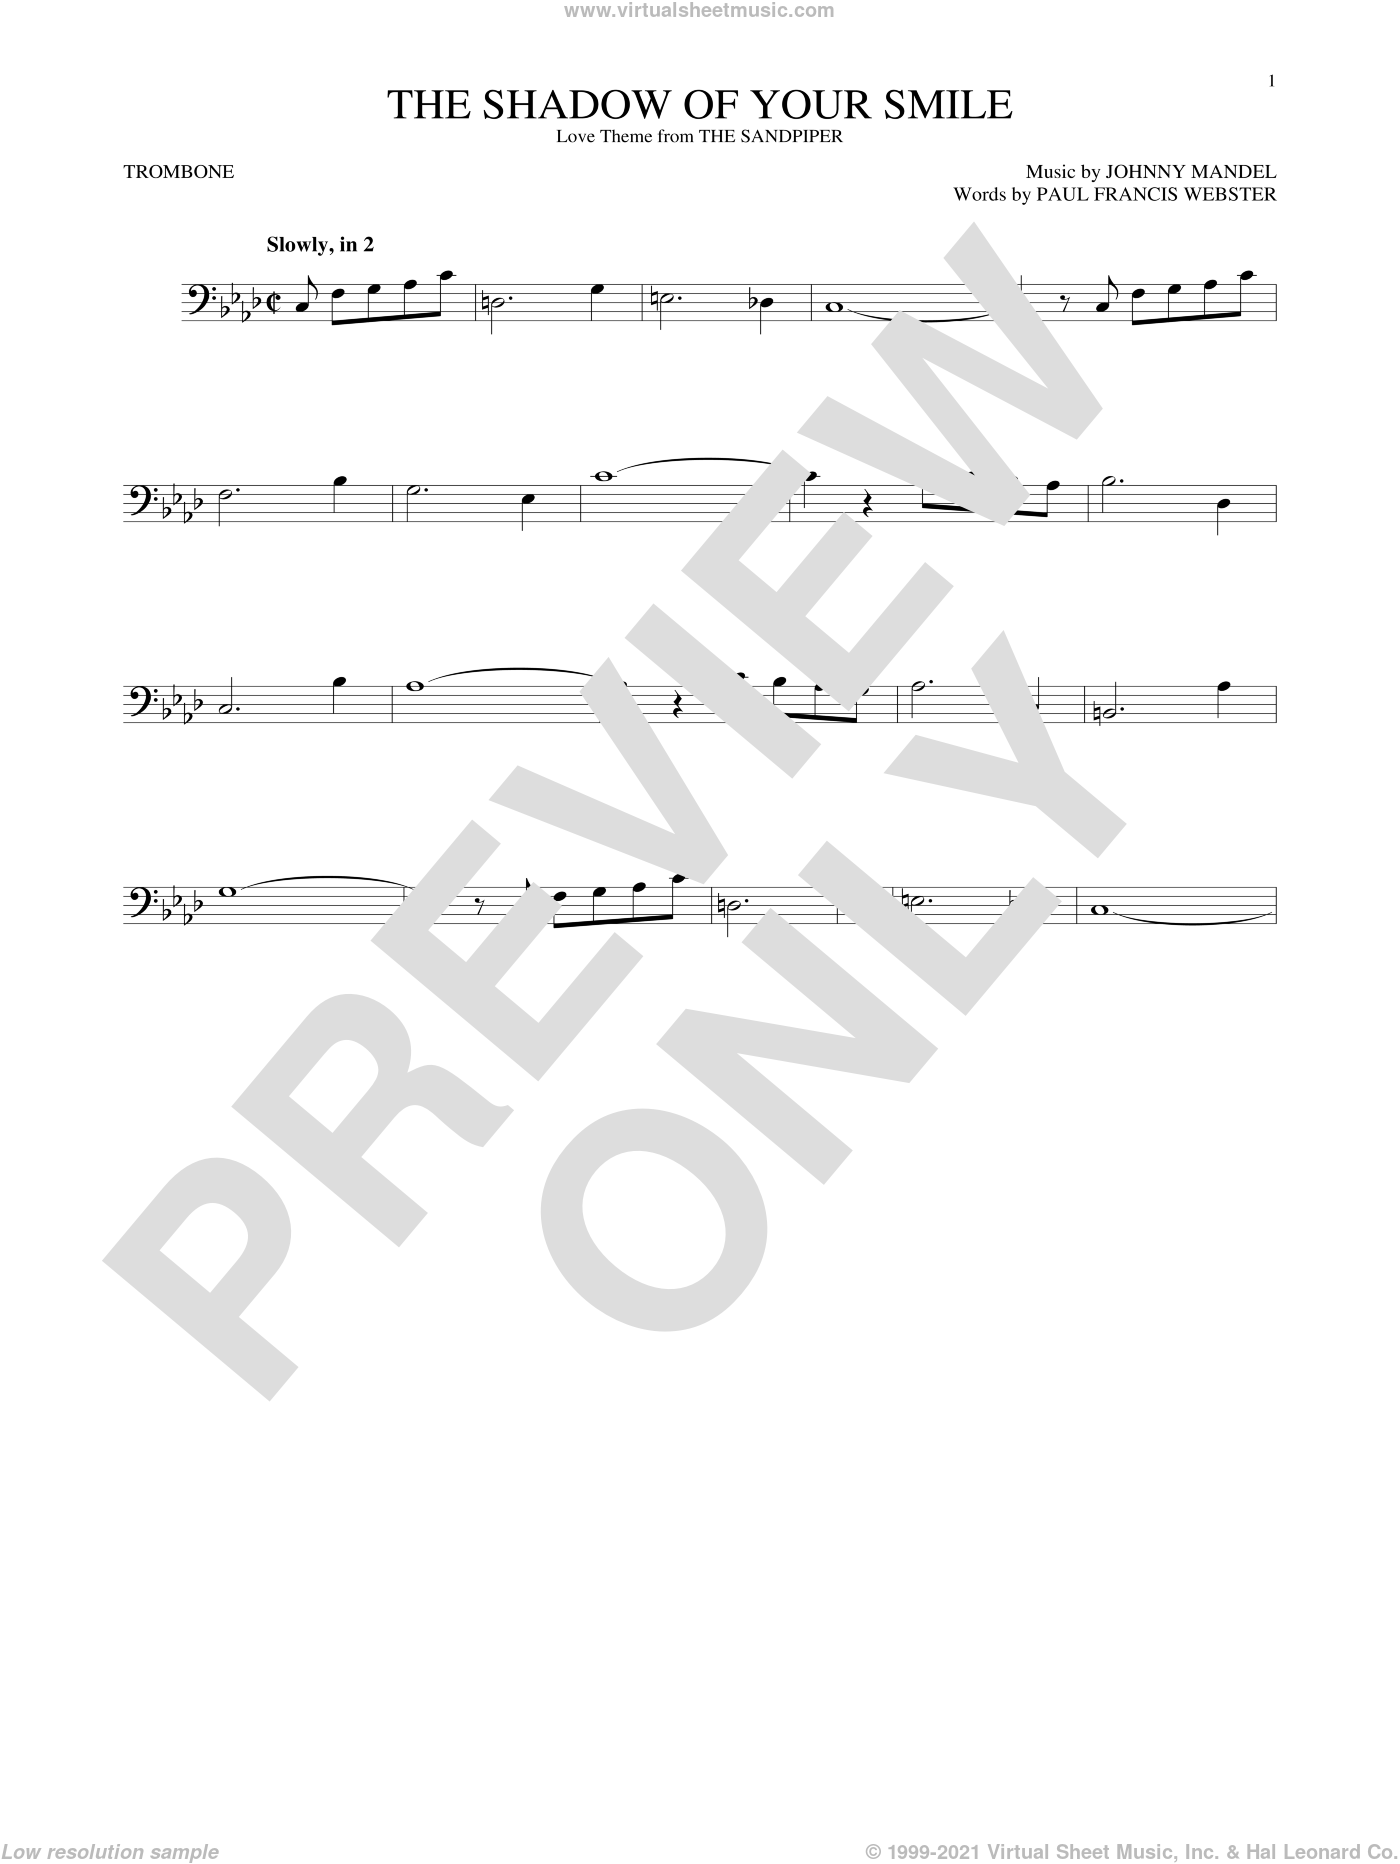 The Shadow Of Your Smile sheet music for trombone solo by Paul Francis Webster and Johnny Mandel. Score Image Preview.